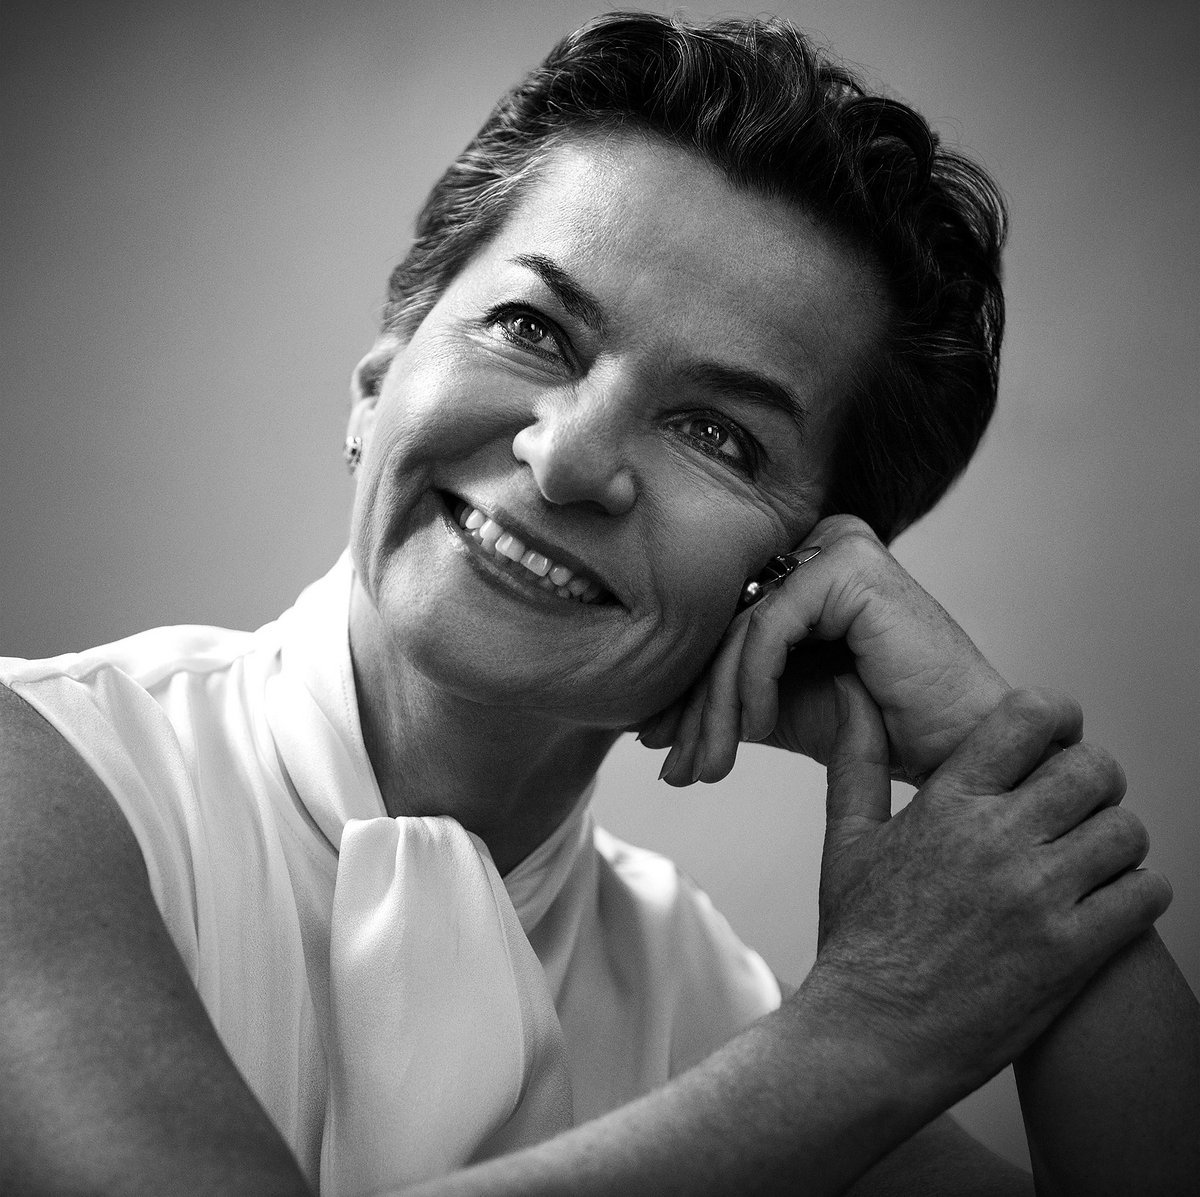 Standing ovation for Christiana Figueres. Leadership and tenacity. One of our true climate heroes #ParisAgreement https://t.co/GmA79QyklY